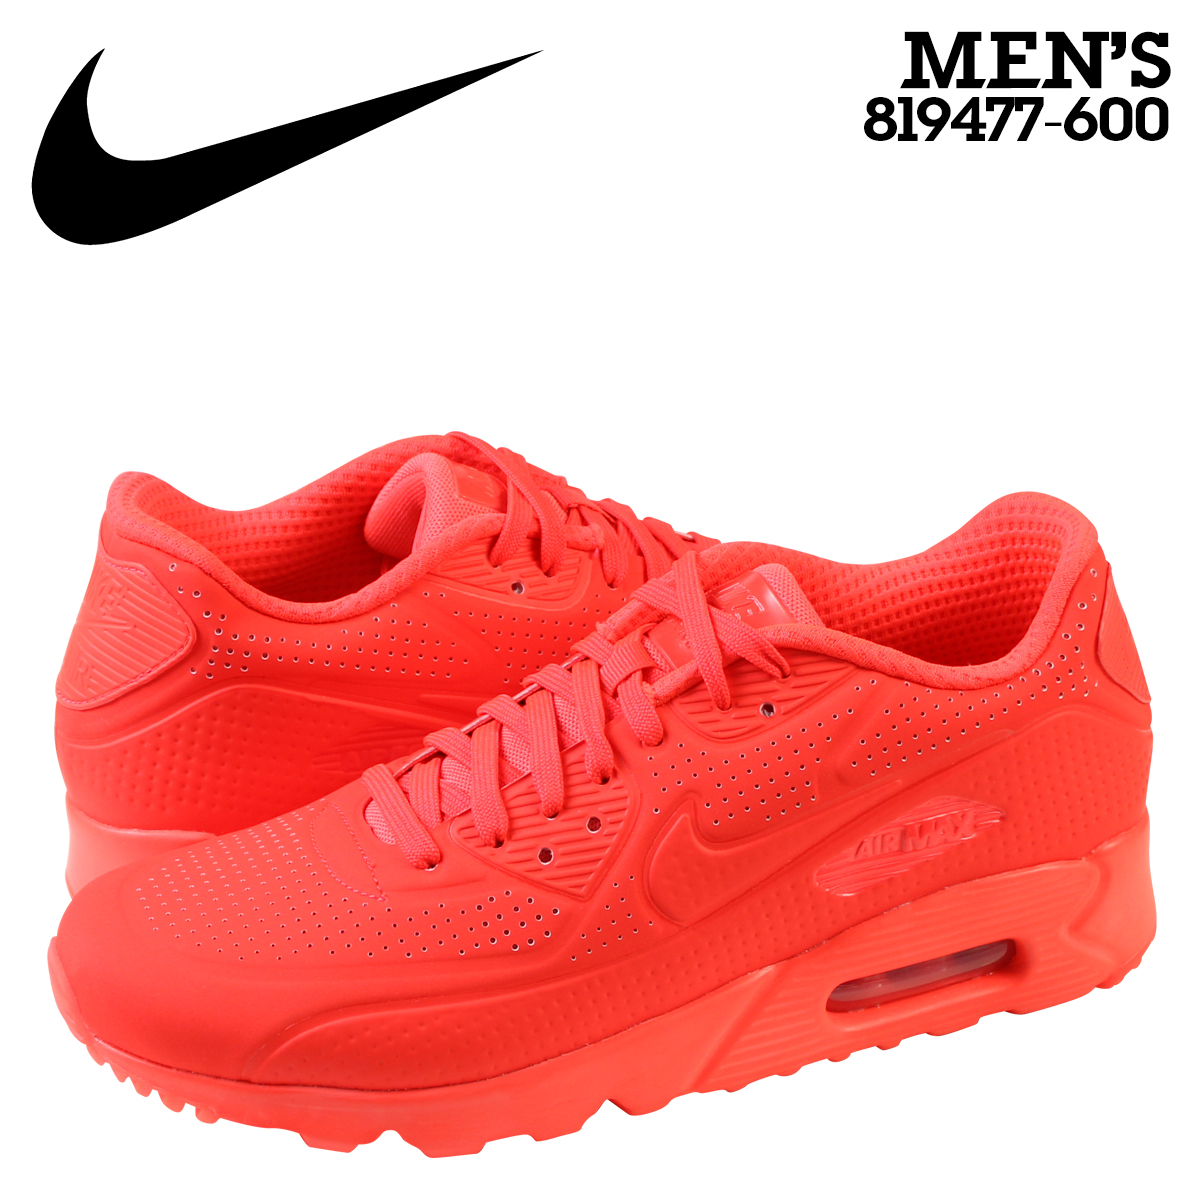 the latest a141b 4cc41 Nike NIKE Air Max sneakers AIR MAX 90 ULTRA MOIRE Air Max 90 ultra moire  819477-600 Crimson men s shoe Red